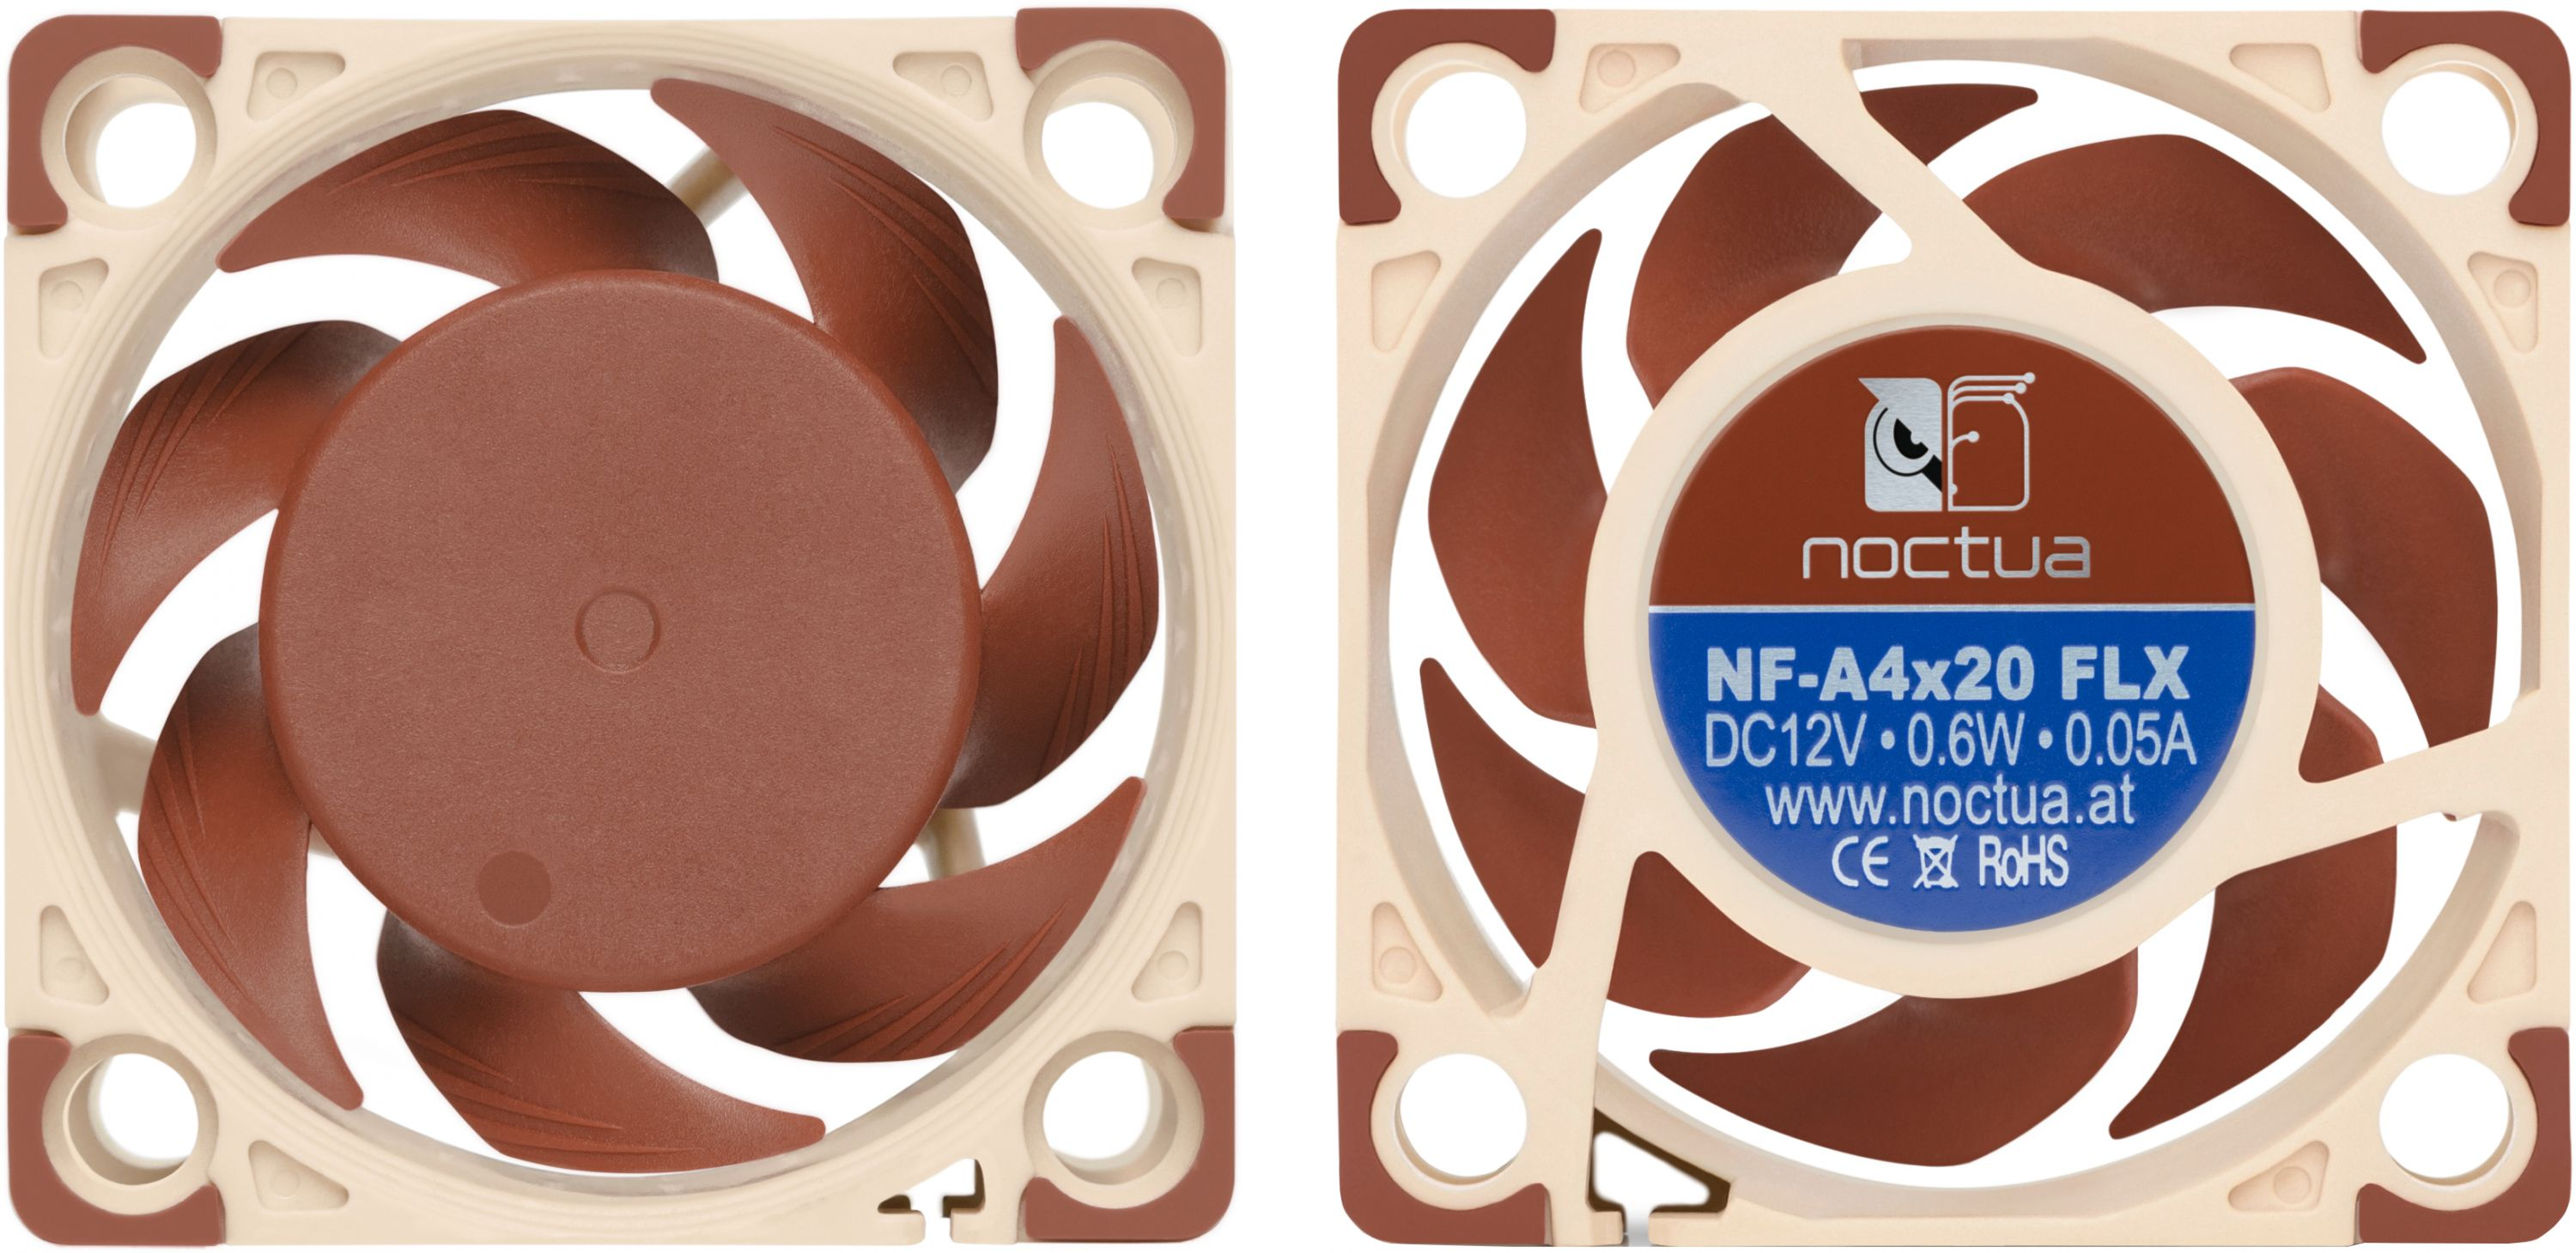 Nf A4x20 Flx 40mm X 20mm 3 Pin Fan Switching Regulator 05a By Lm2574 Noctuas Aao Advanced Acoustic Optimisation Frames Feature Integrated Anti Vibration Pads As Well Proprietary Stepped Inlet Design And Inner